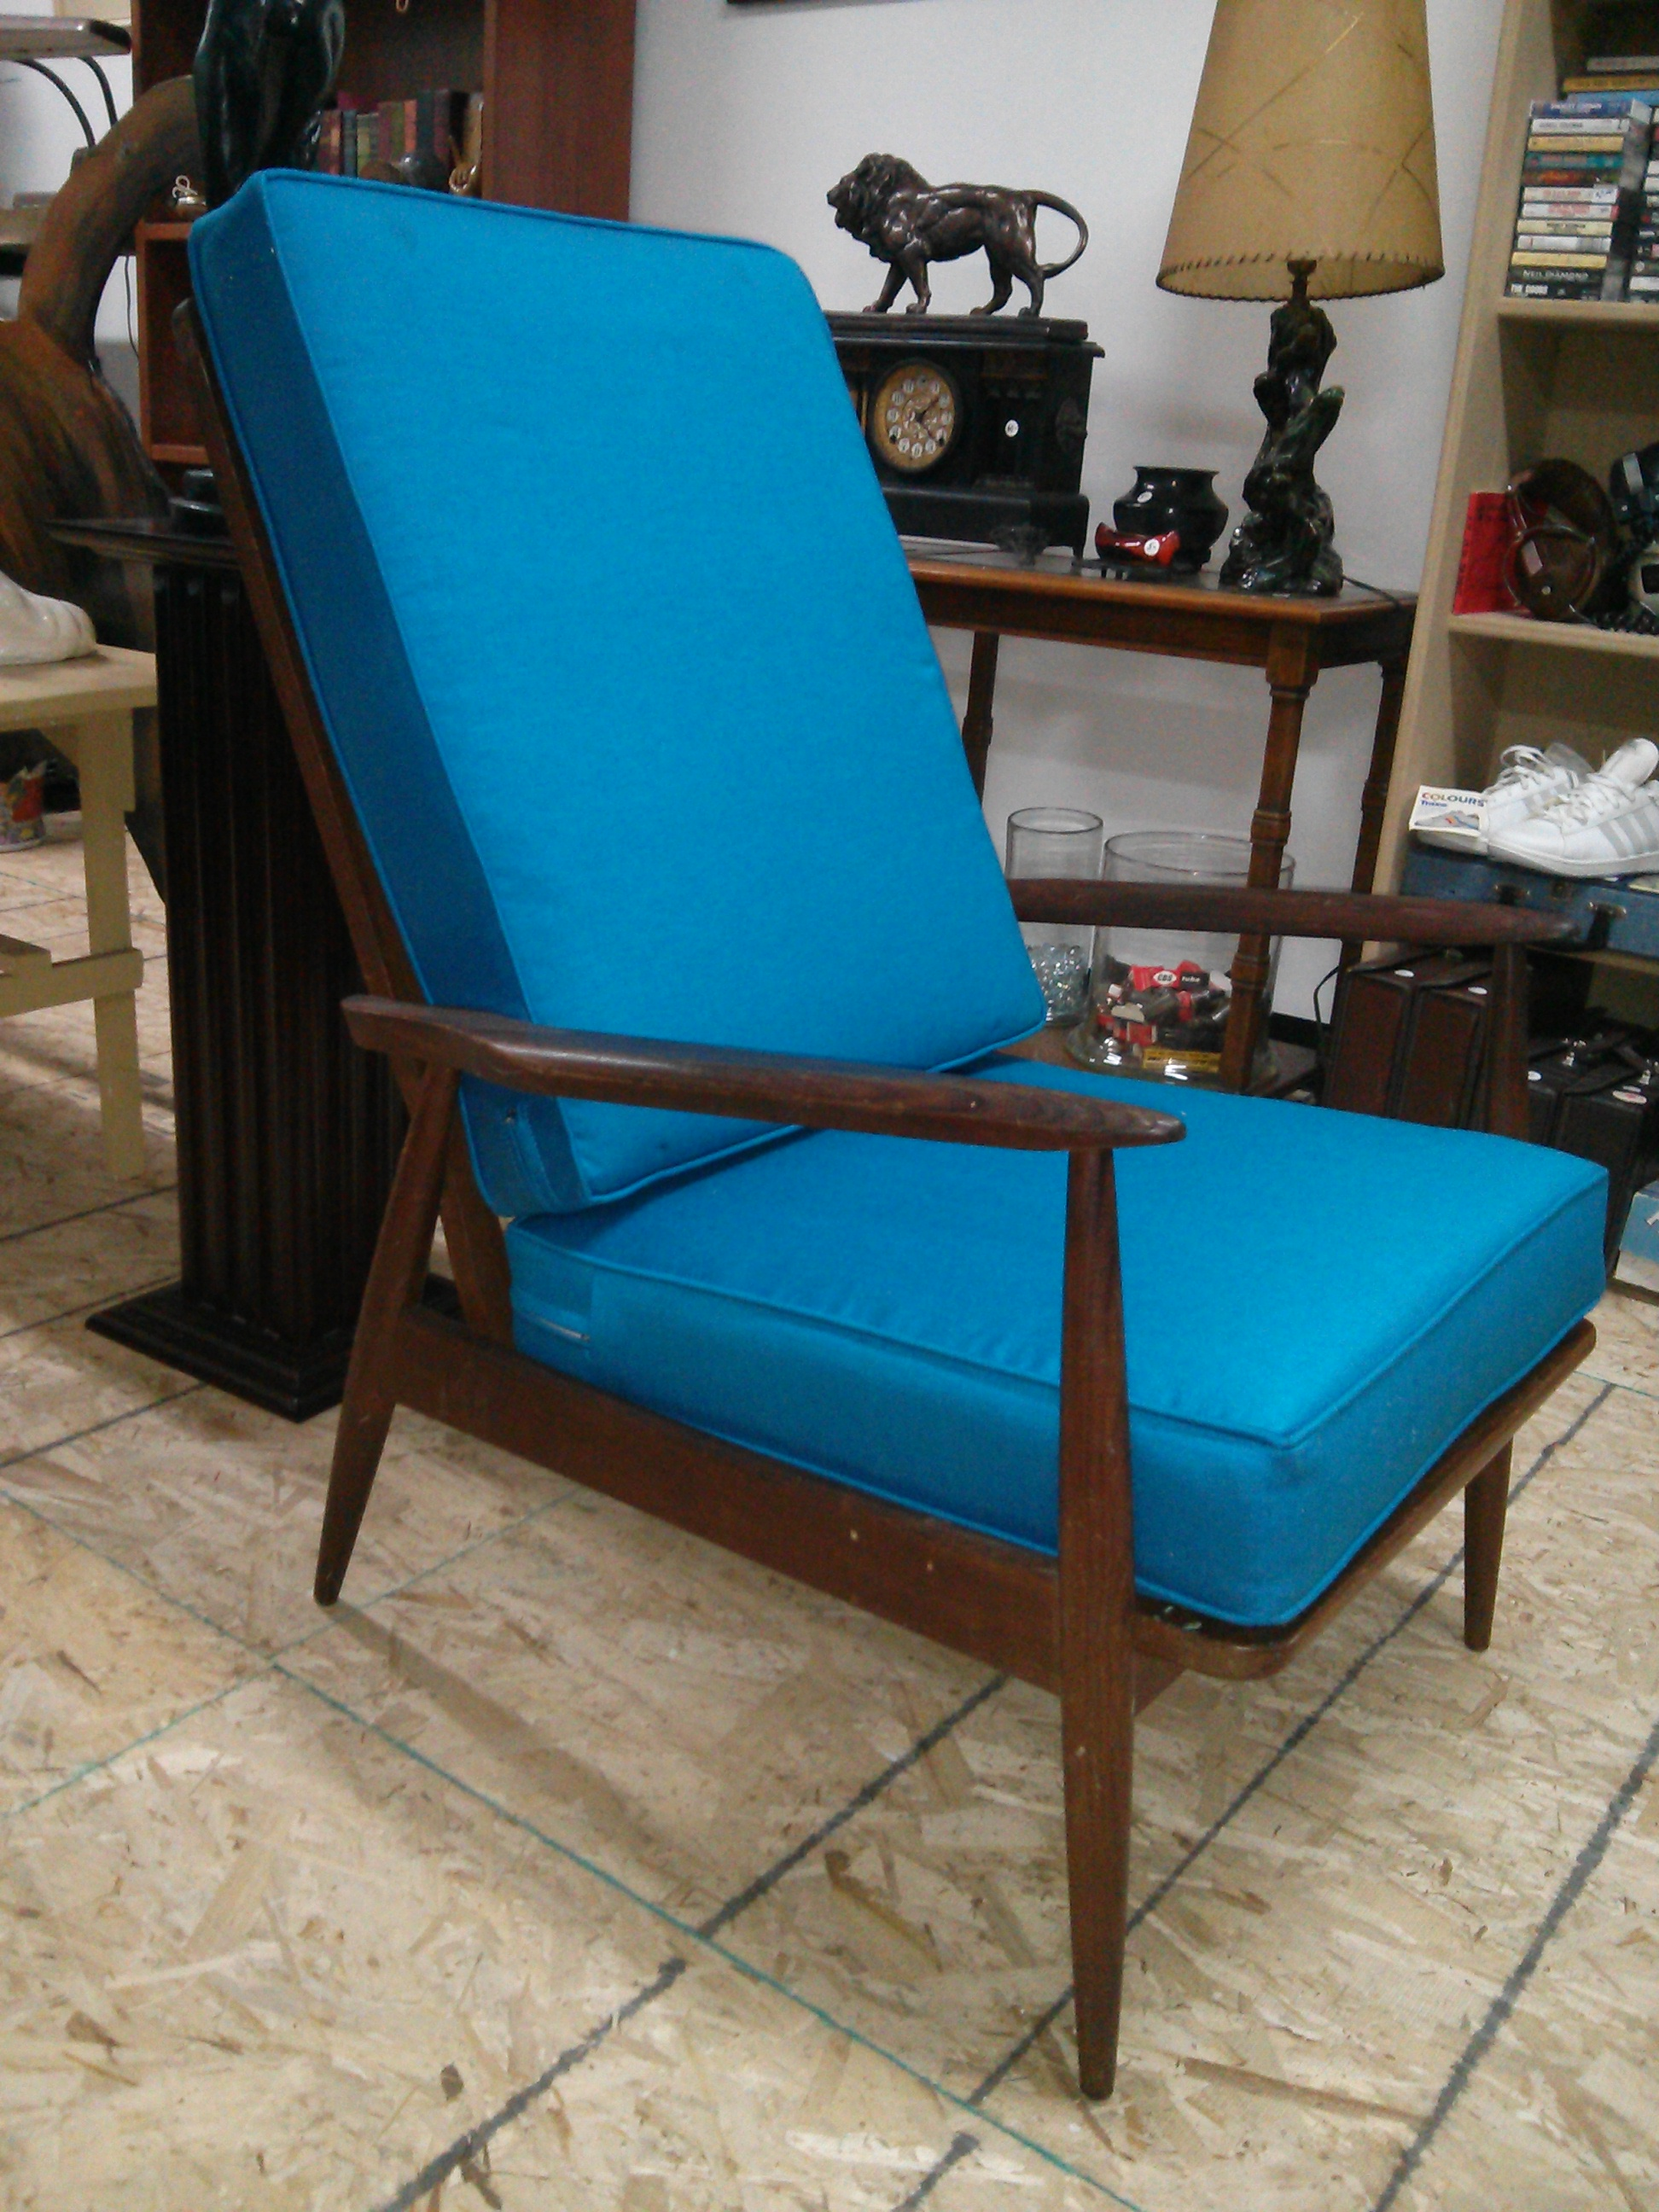 1950's MODERN MAD-MEN ERA CHAIR